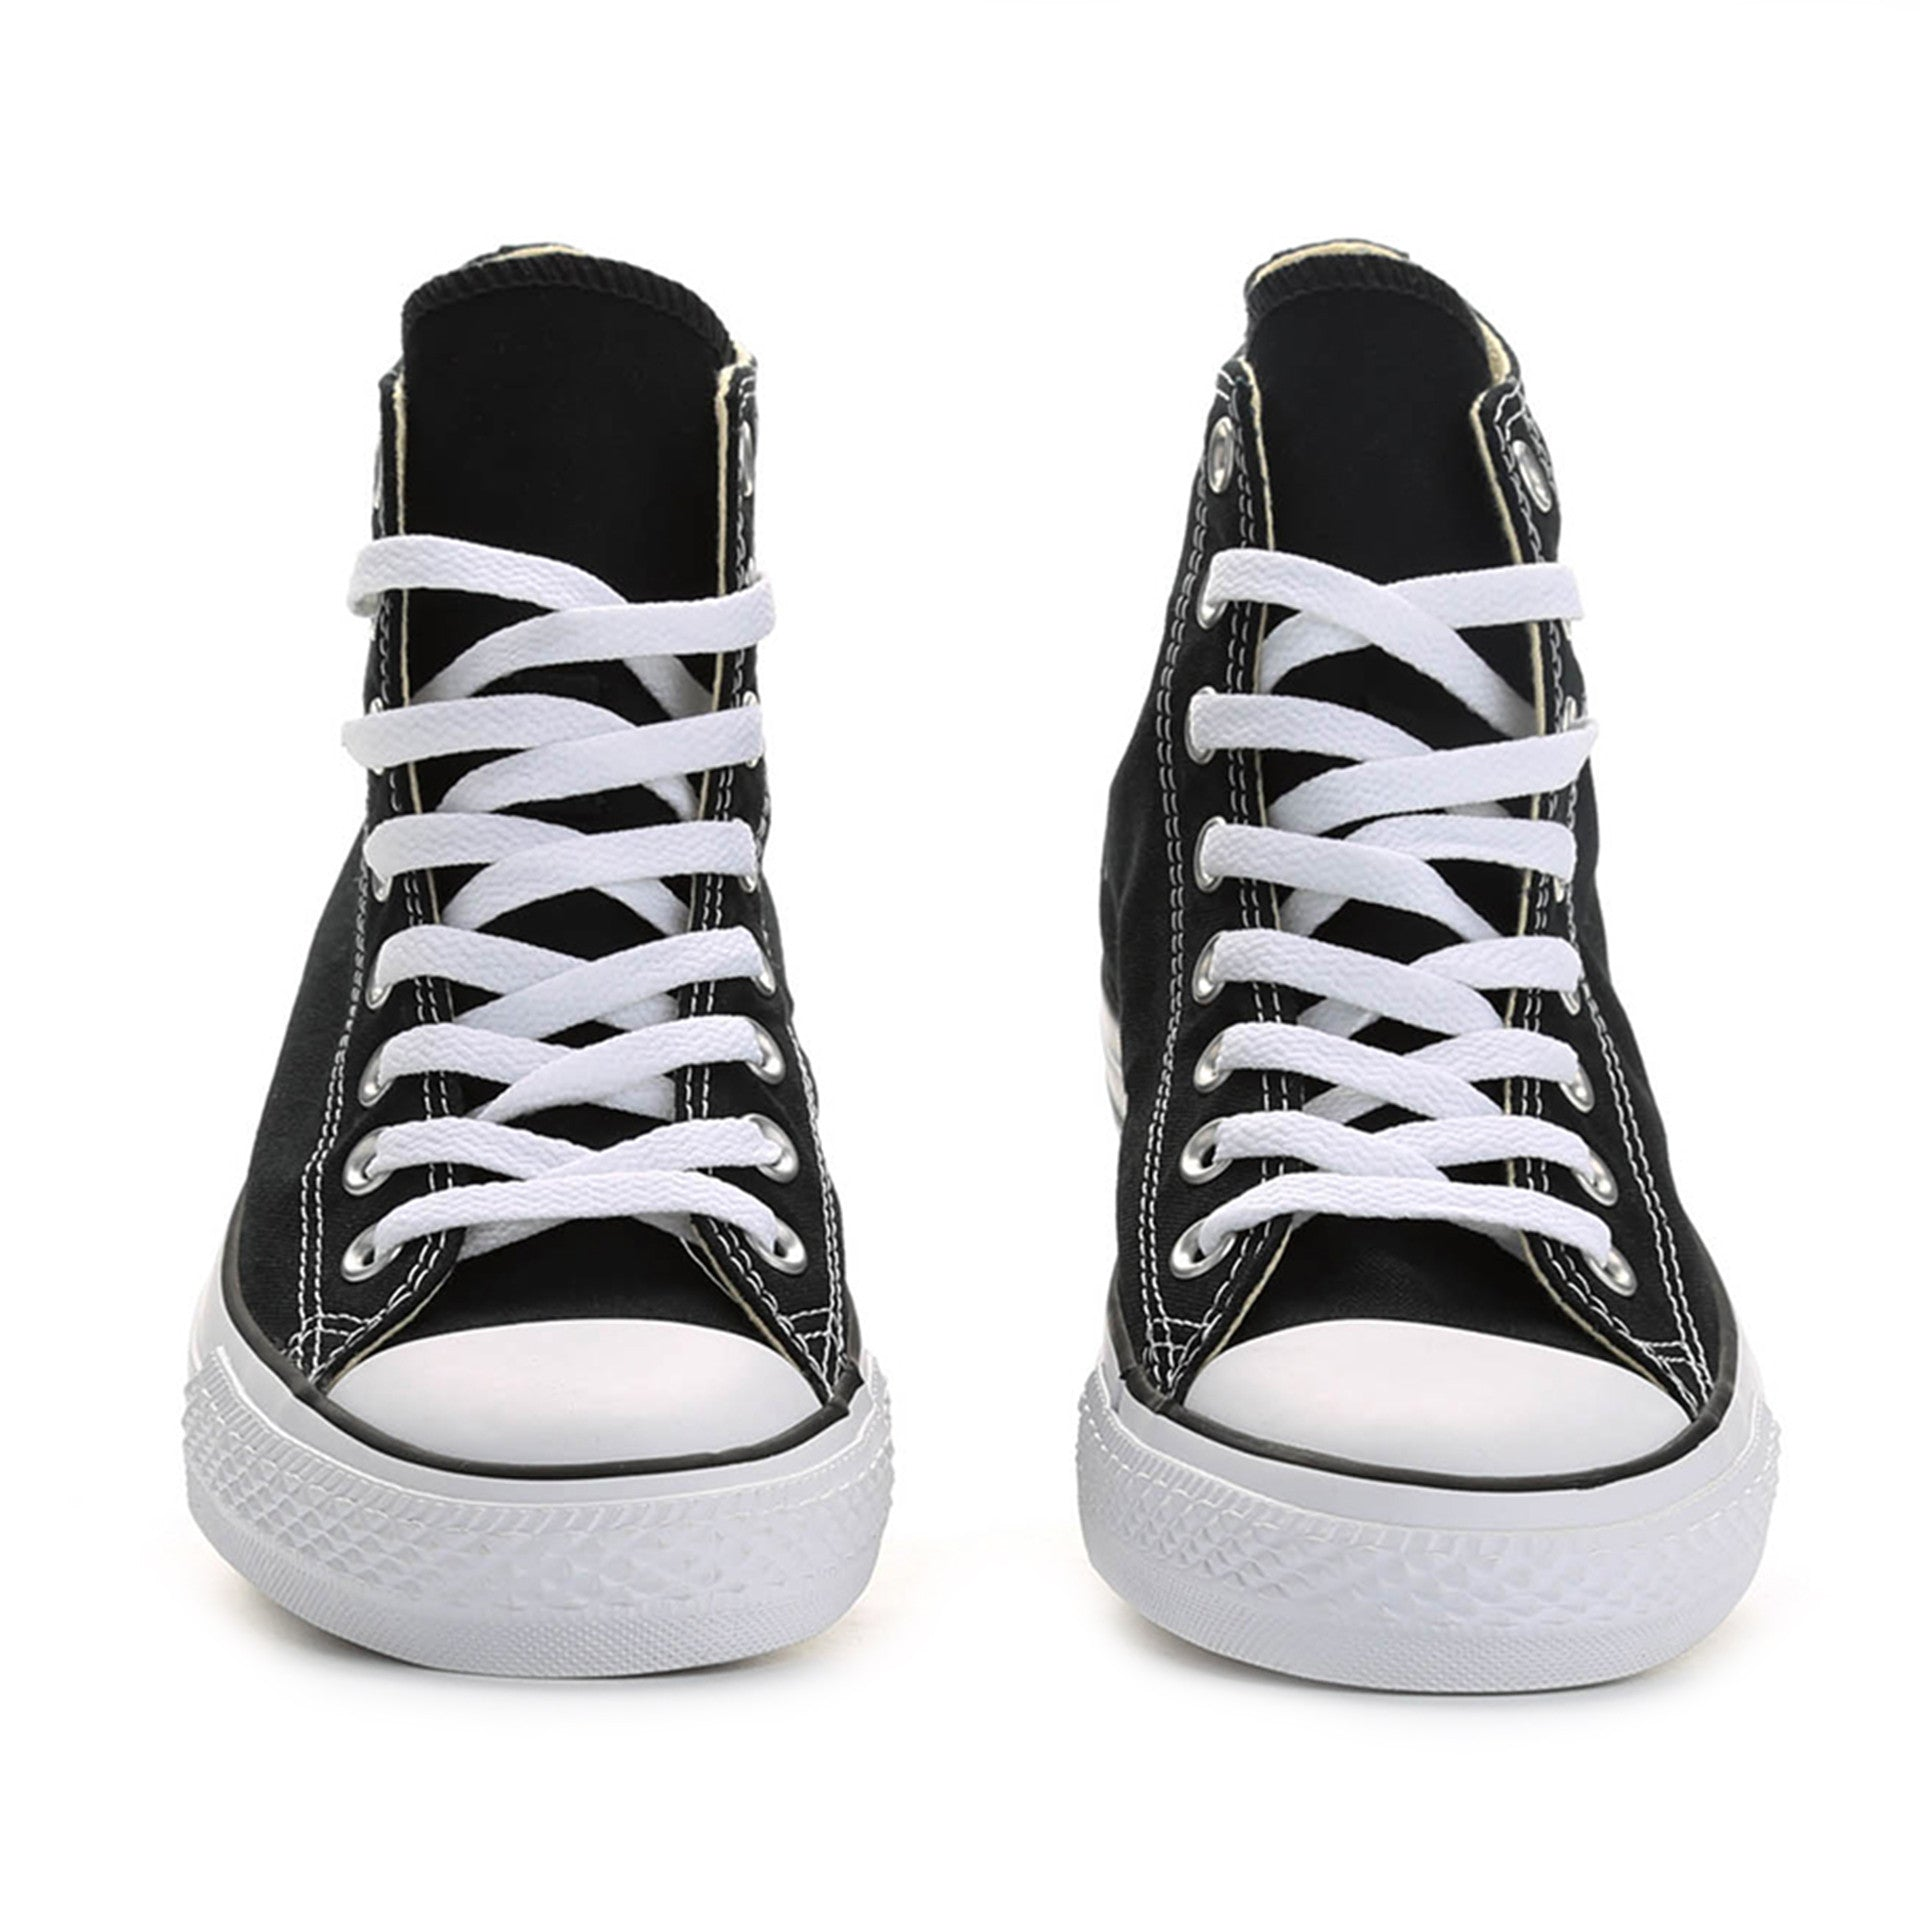 92cbfd477d6b Converse Chuck Taylor High Top - Black - New Star